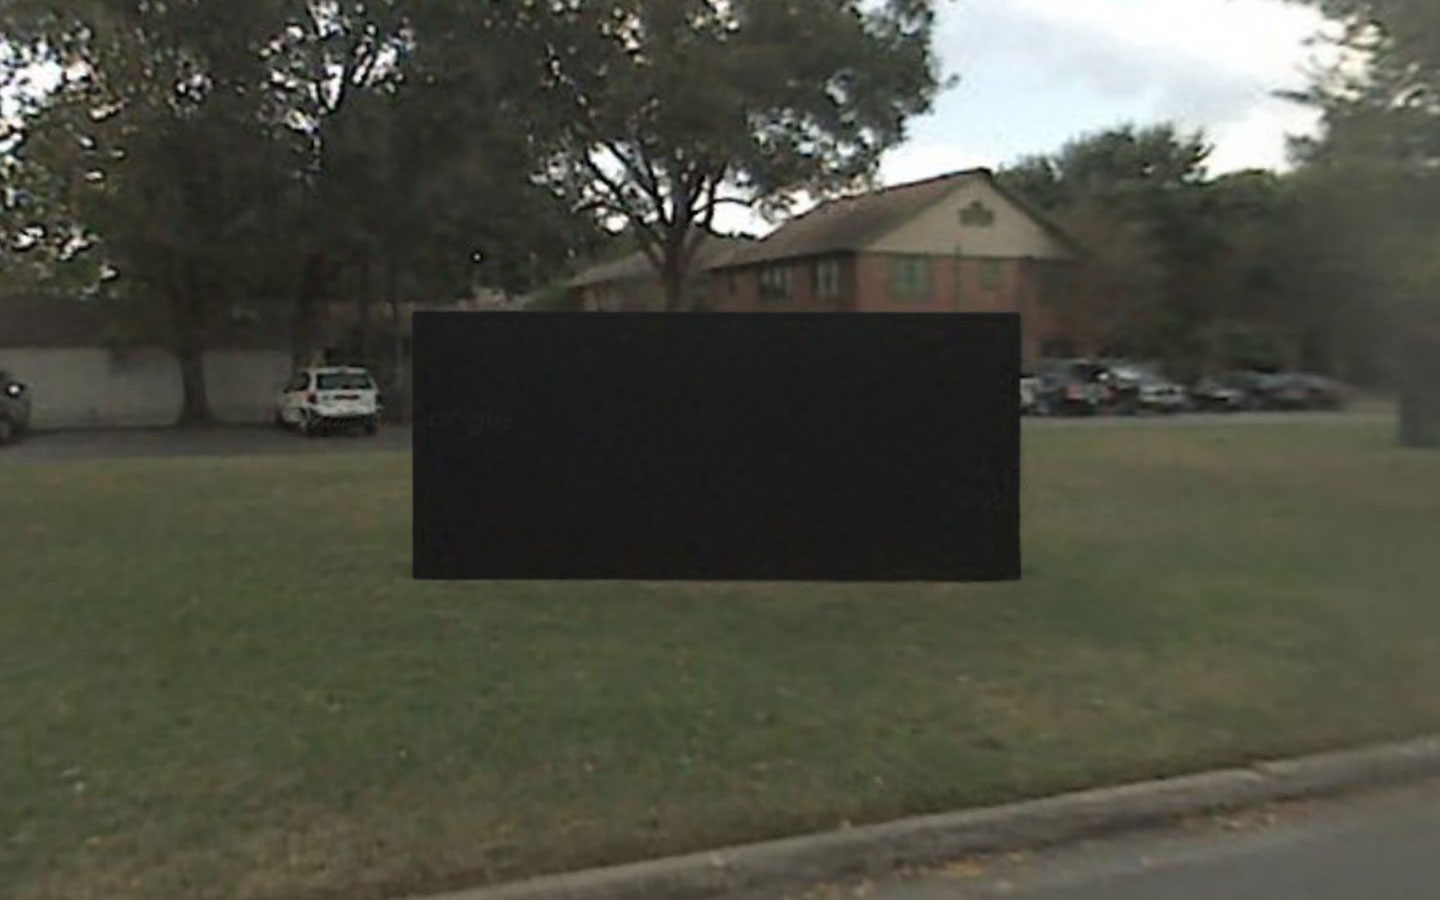 Claude Closky, Screen Shot, 4106 Loretto Drive, Houston, Texas, United States, Tony Smith , New Piece, 1966